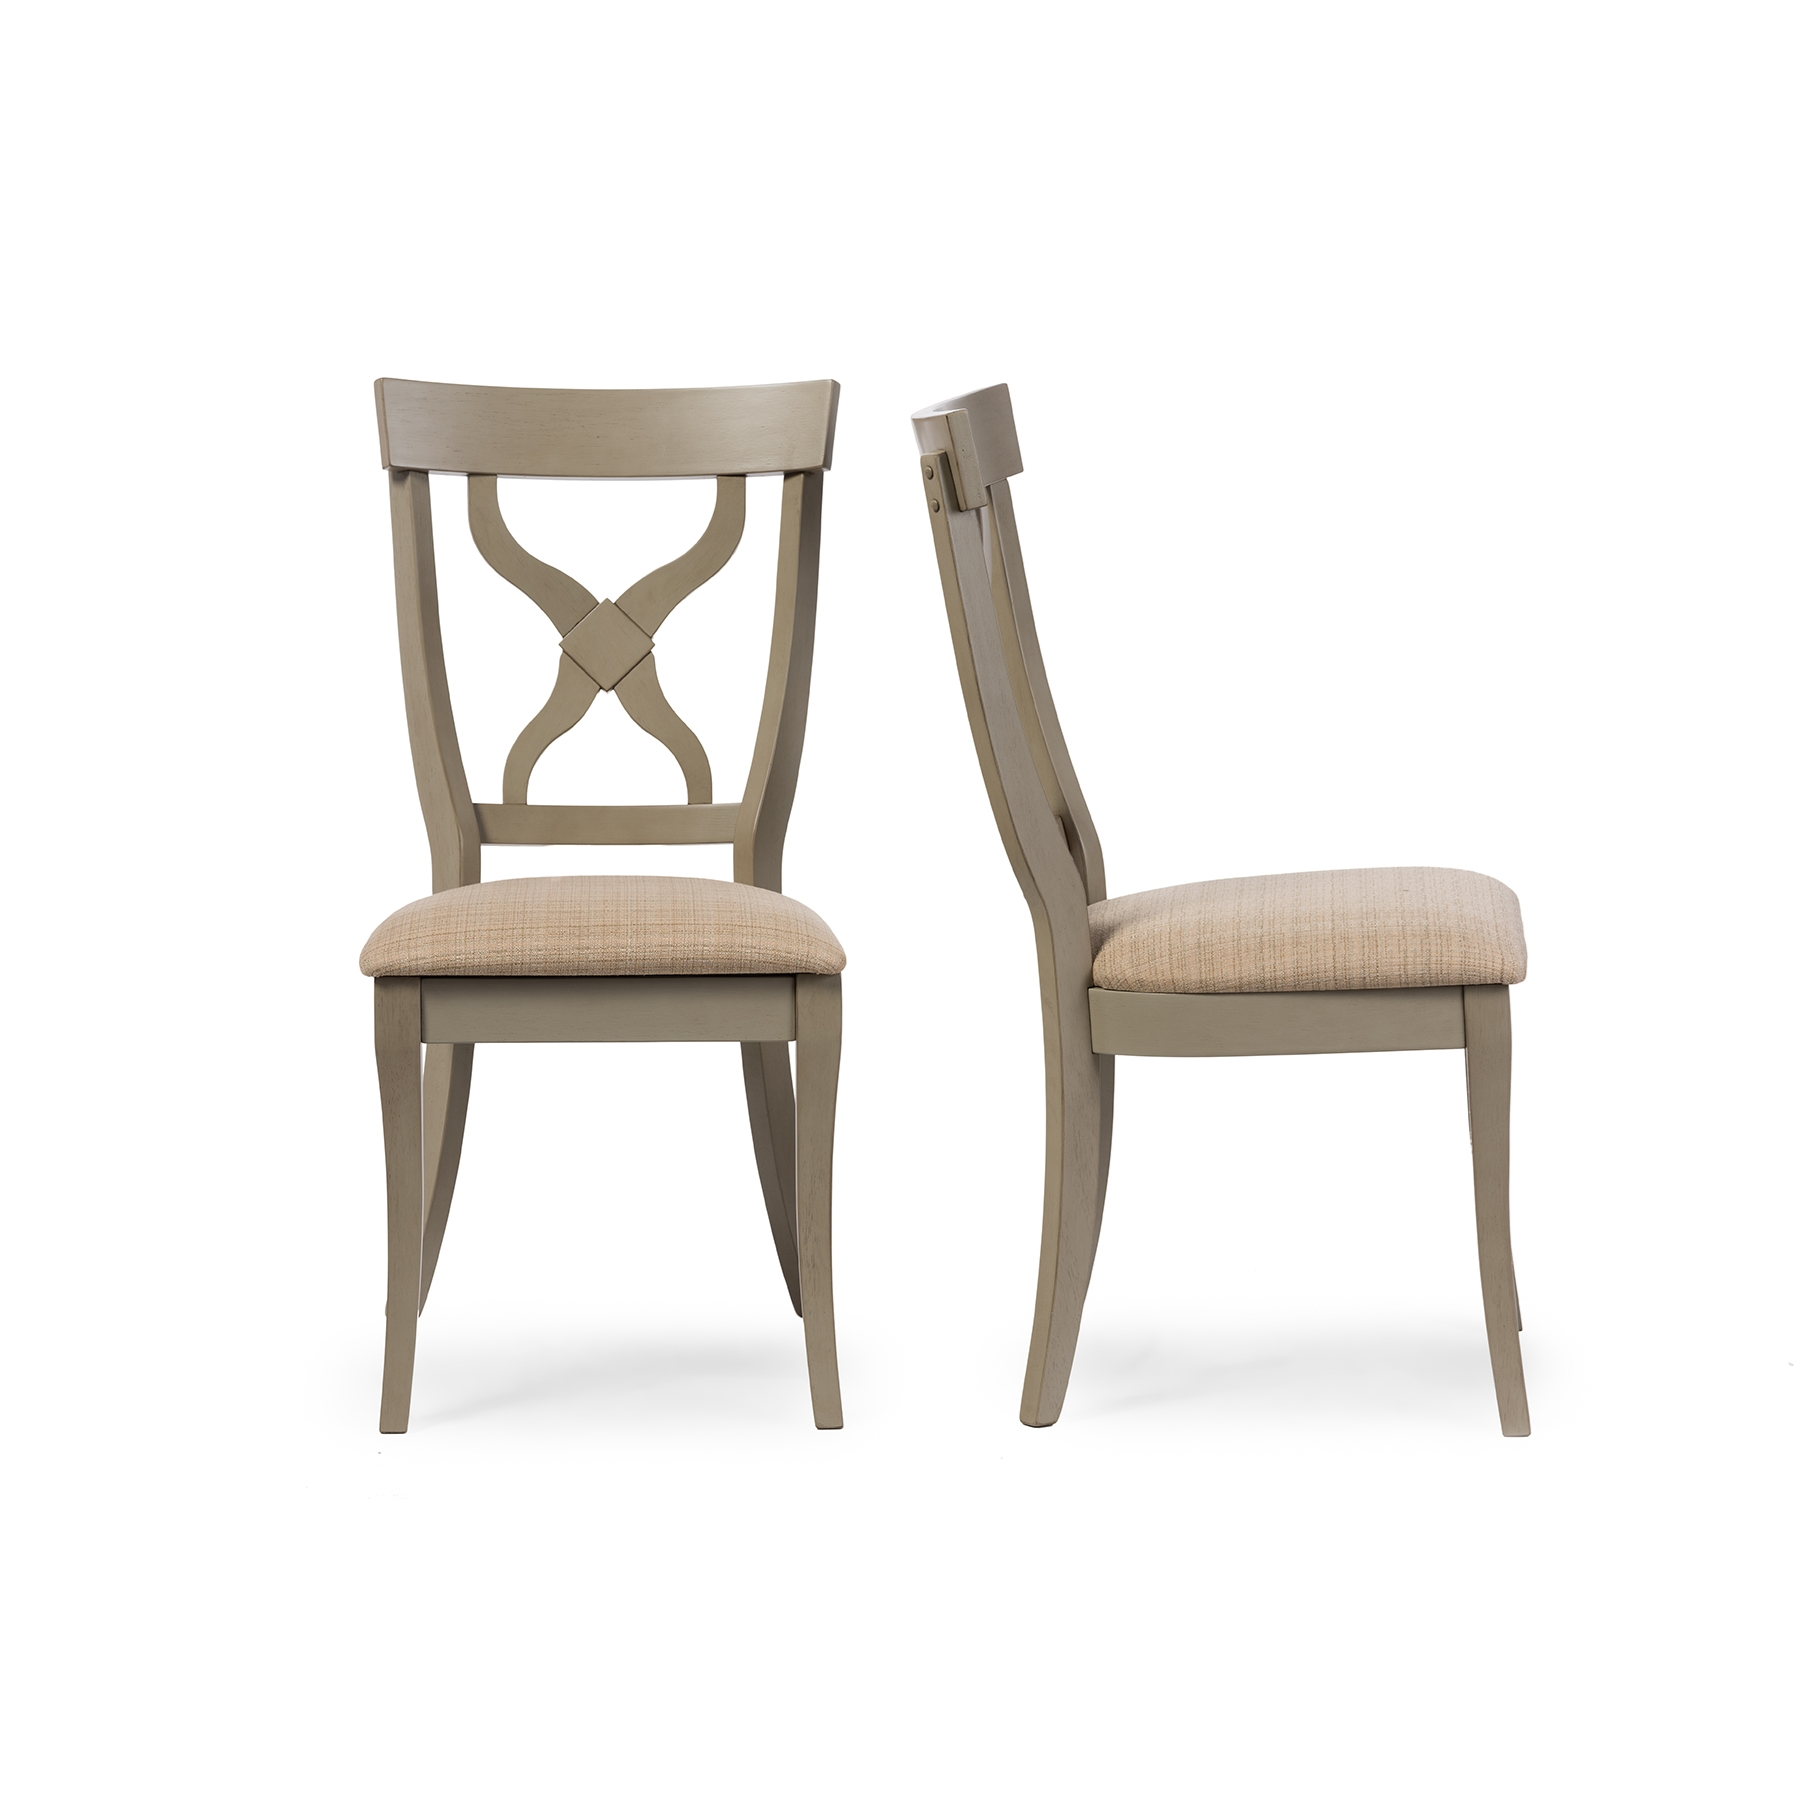 Studio Chairs Baxton Studio Wholesale Dining Chairs Wholesale Dining Room